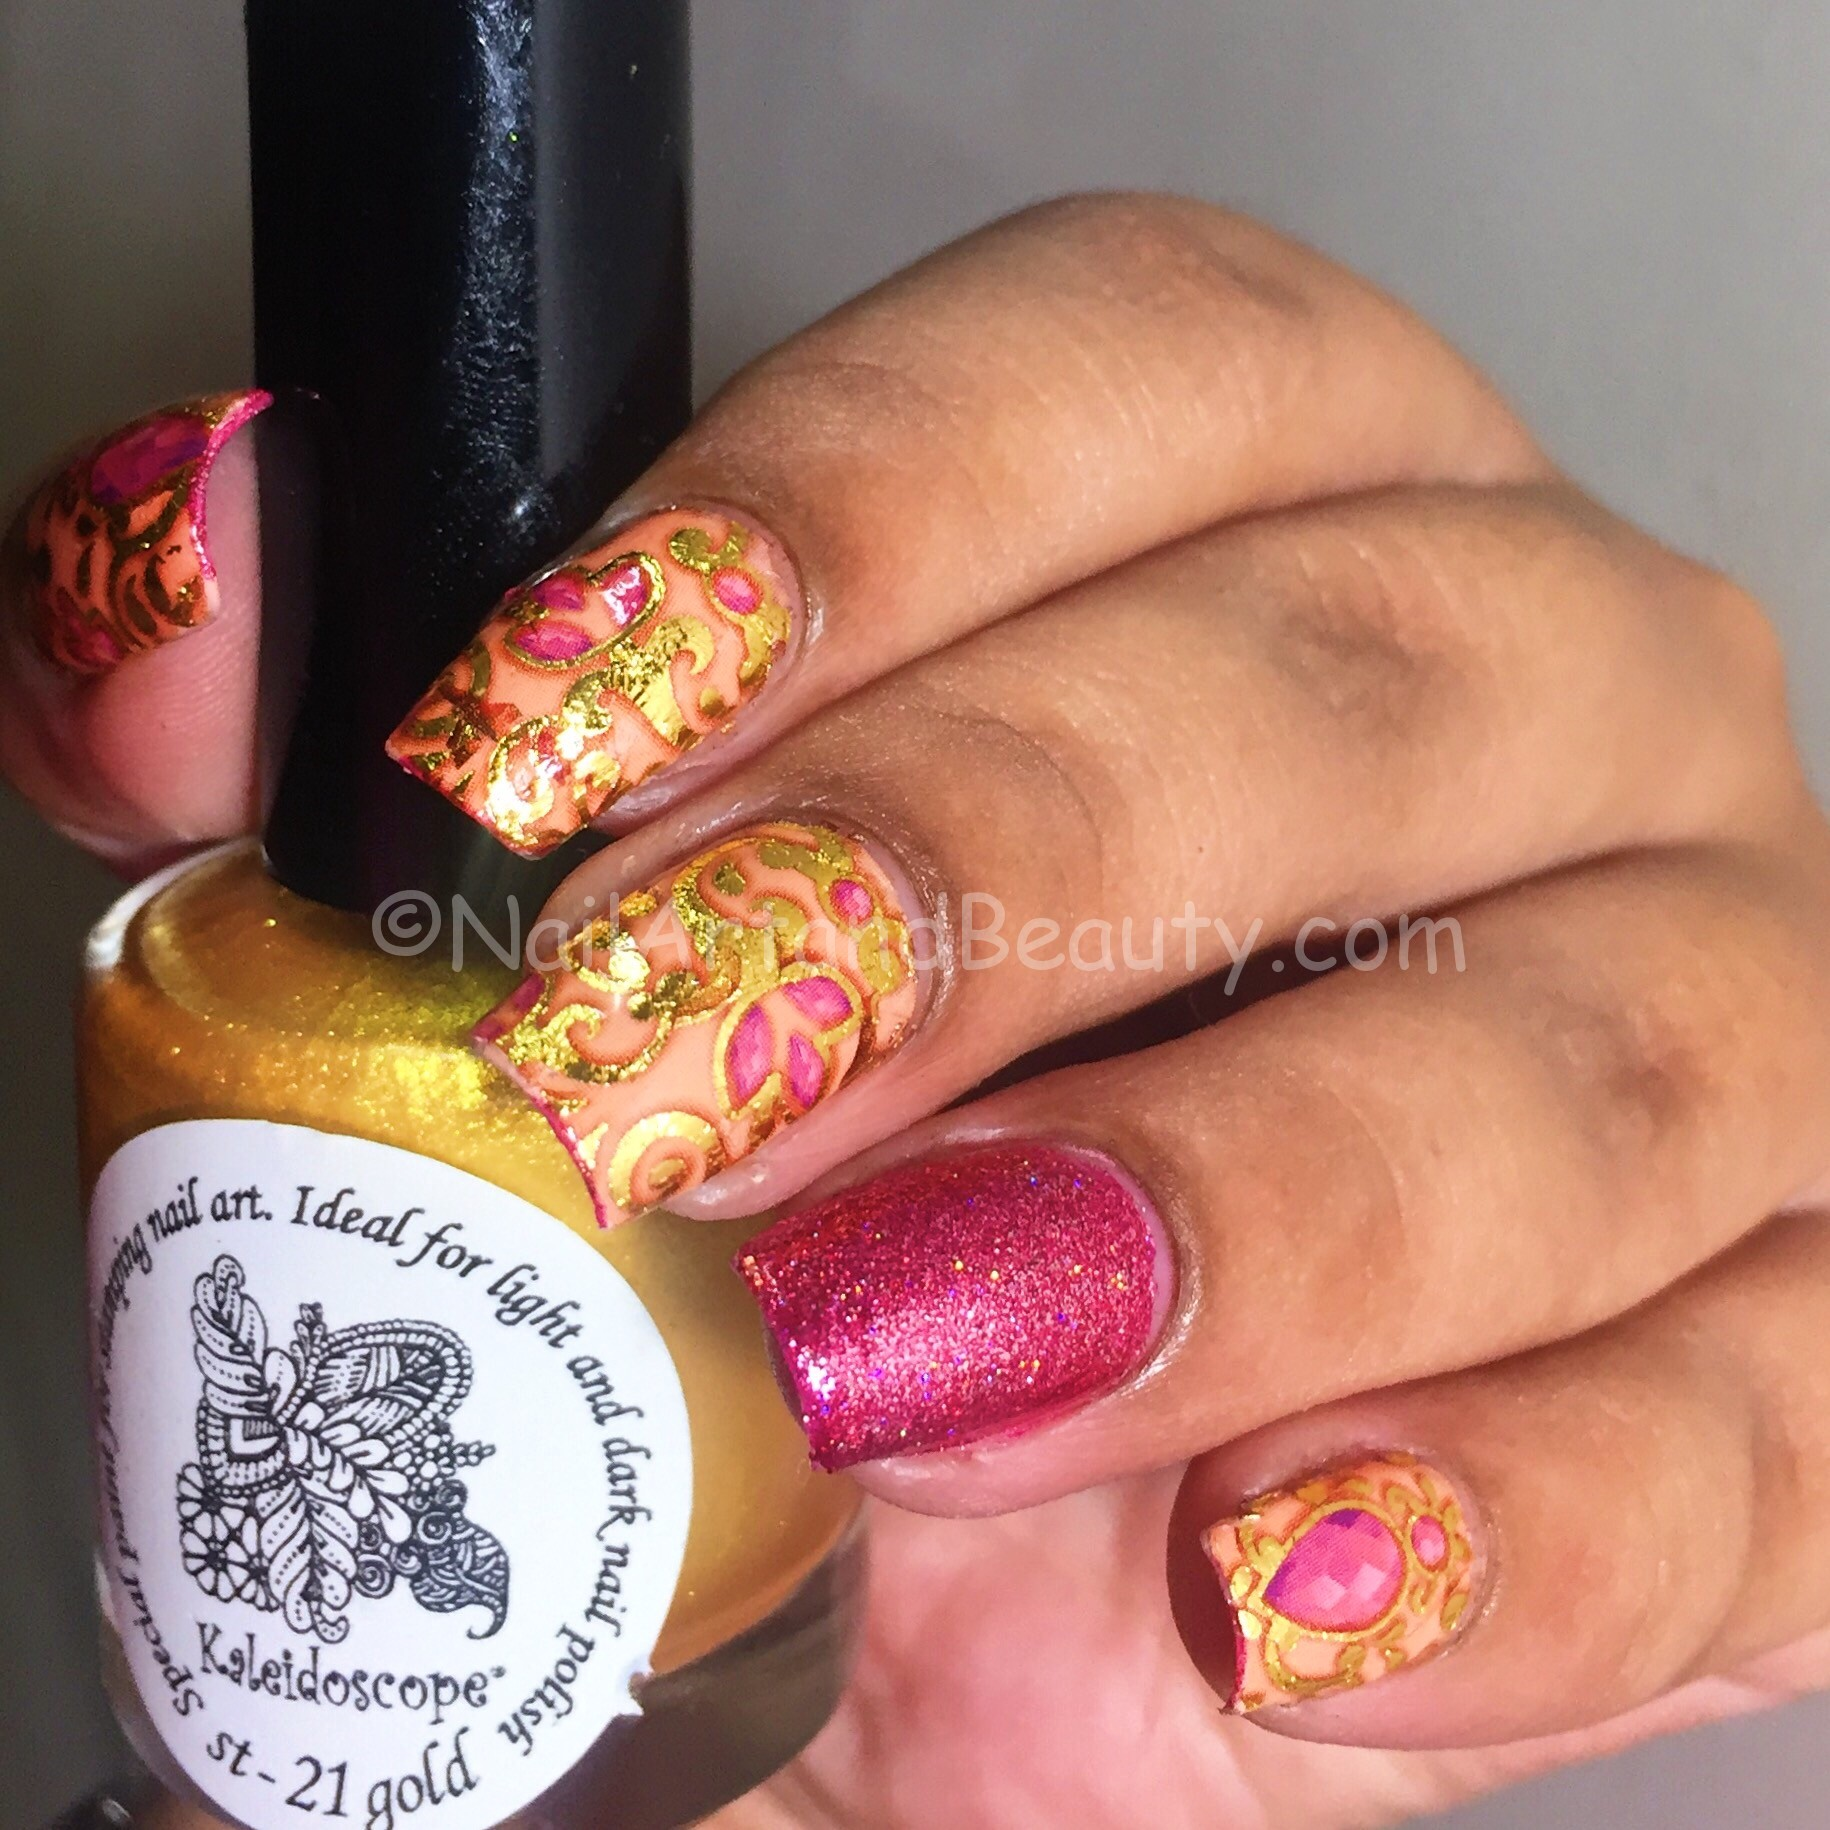 Egyptial Prints inspired Nails using MILV Decals